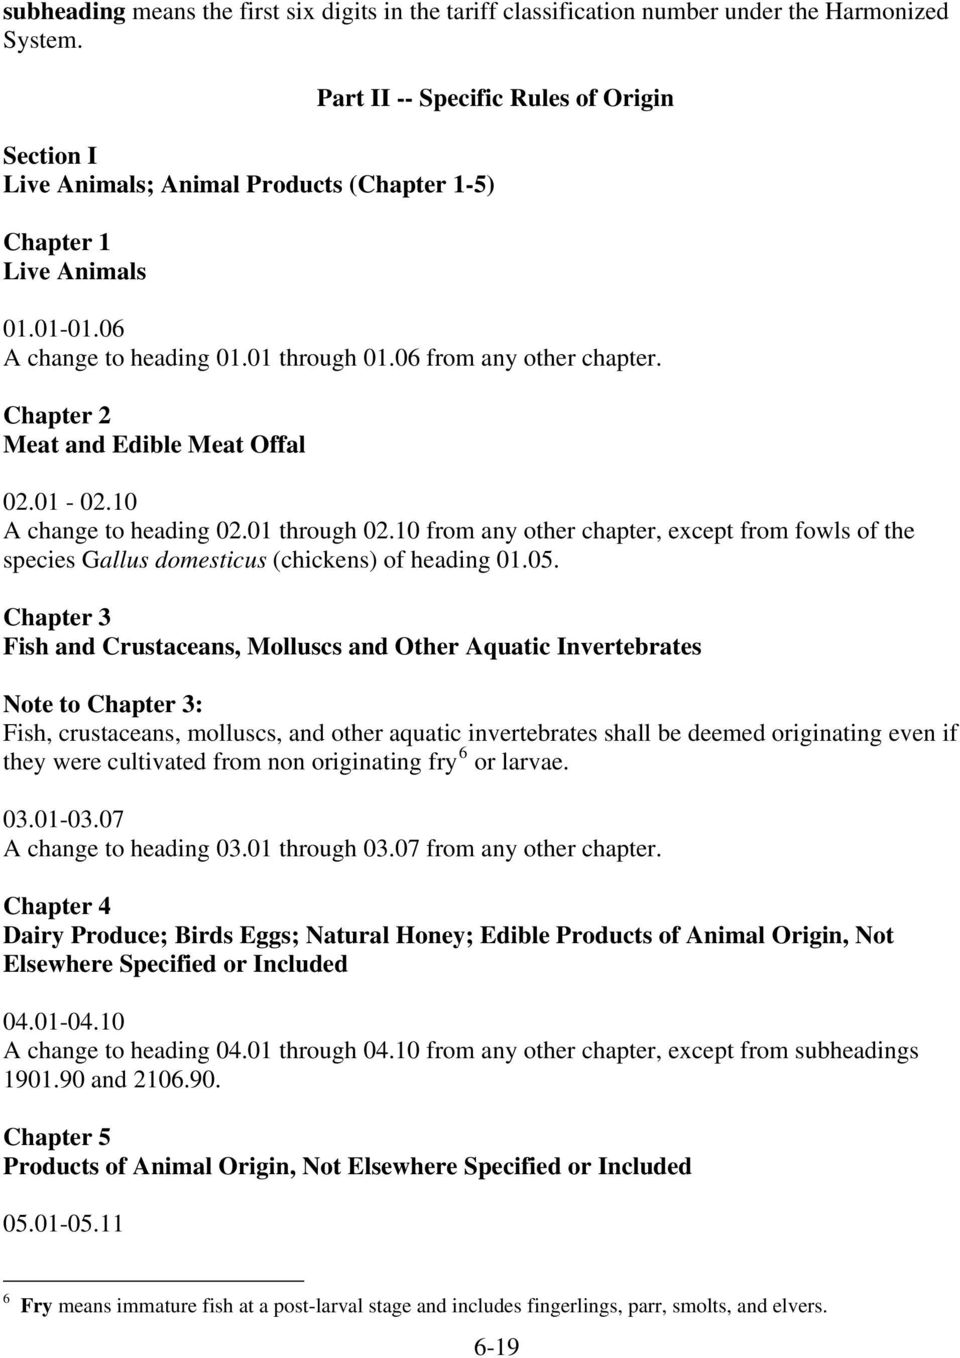 Chapter 2 Meat and Edible Meat Offal 02.01-02.10 A change to heading 02.01 through 02.10 from any other chapter, except from fowls of the species Gallus domesticus (chickens) of heading 01.05.